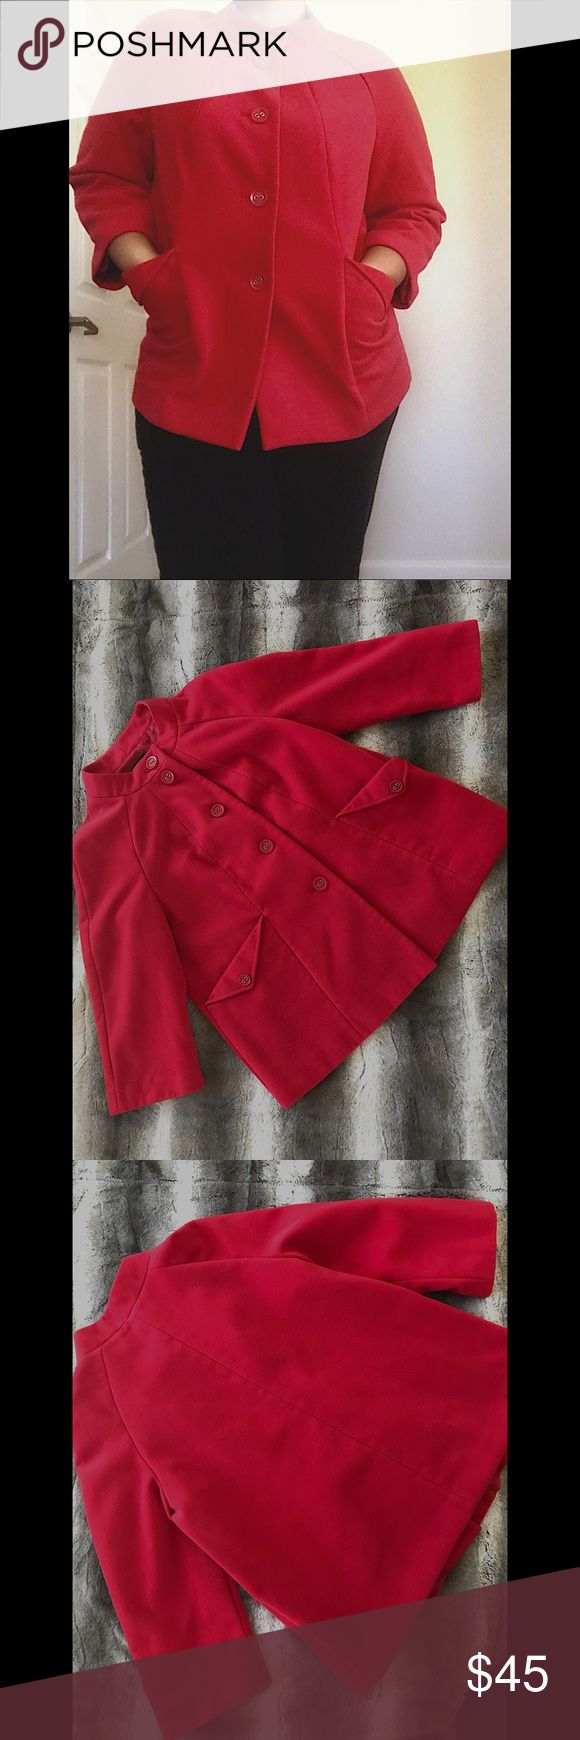 Investments red pea coat 🎄 Perfect for the holidays 🎄🌹  Shell: 69% Polyester. 29% Rayon. 2% Spandex.  Lining: 100% Polyester.  NO TRADES 🙅🏻 ALL REASONABLE OFFERS ARE ACCEPTED 😊👍🏽 NO LOWBALLERS!!! 😒✌🏽️✌🏽 LET'S BUNDLE!!!! 🎋🎉🎁🎊🎈(47) Investments Jackets & Coats Pea Coats